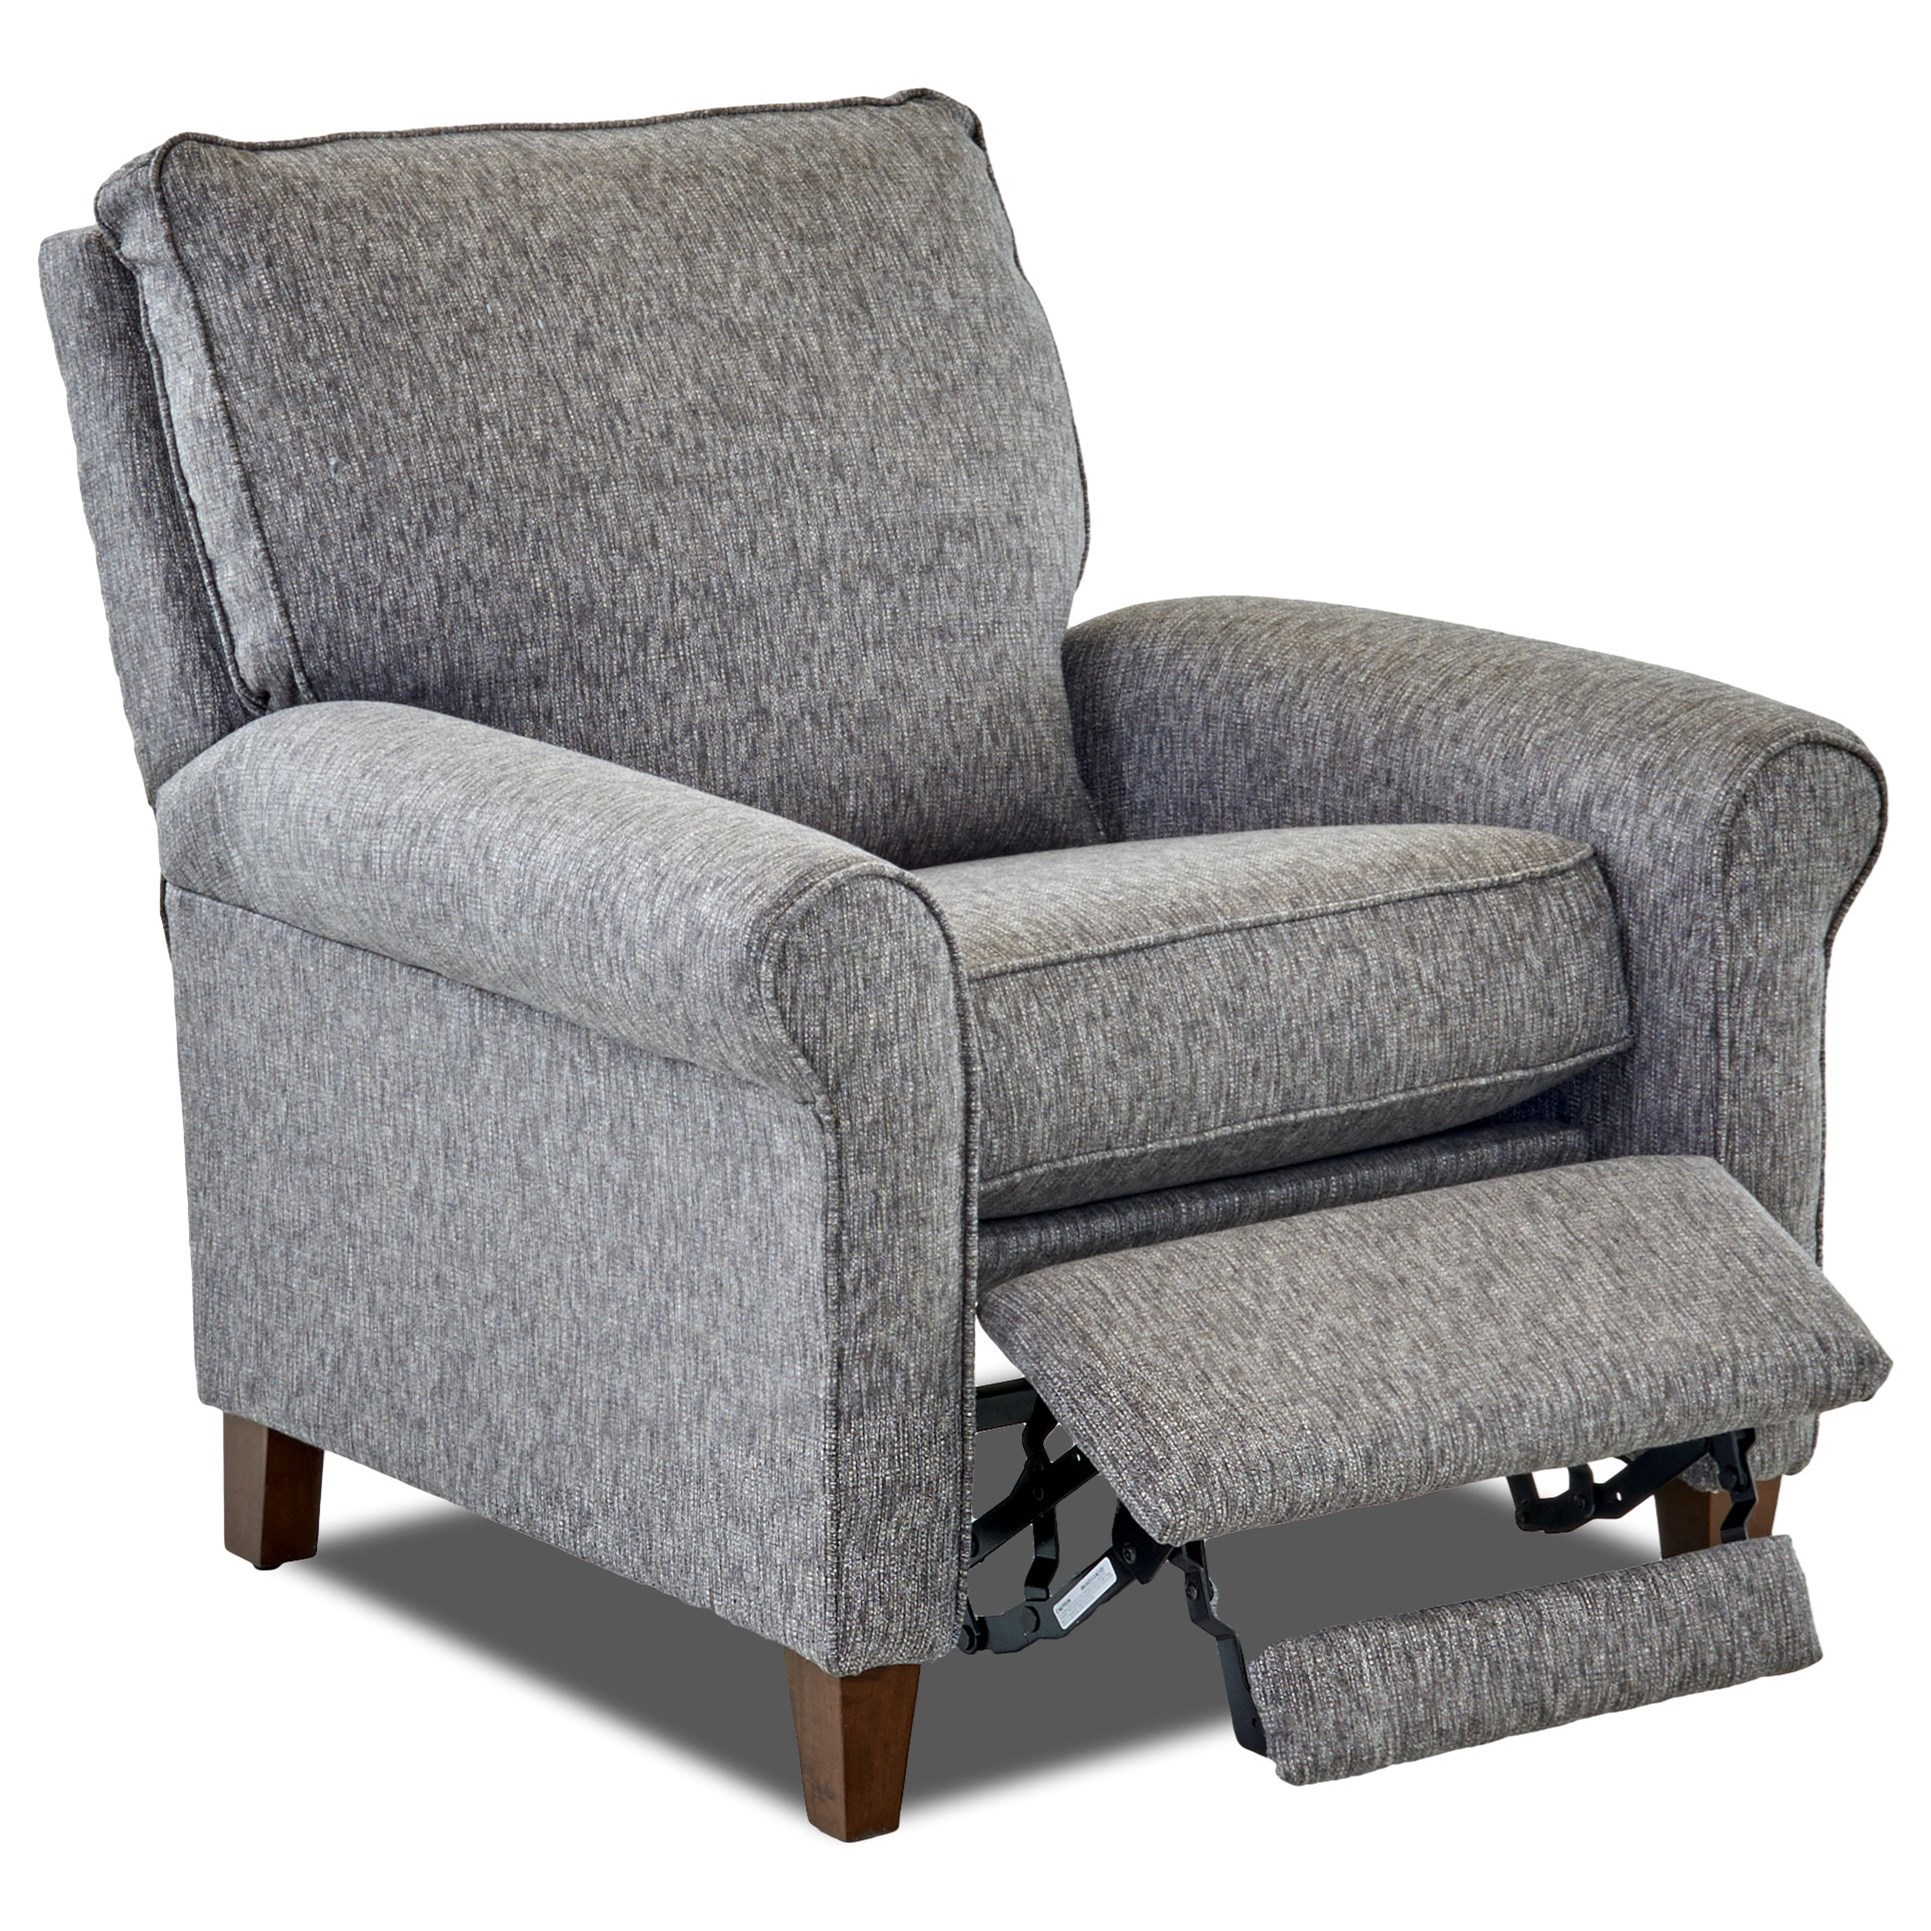 Klaussner Township Casual Power Motion High Leg Recliner